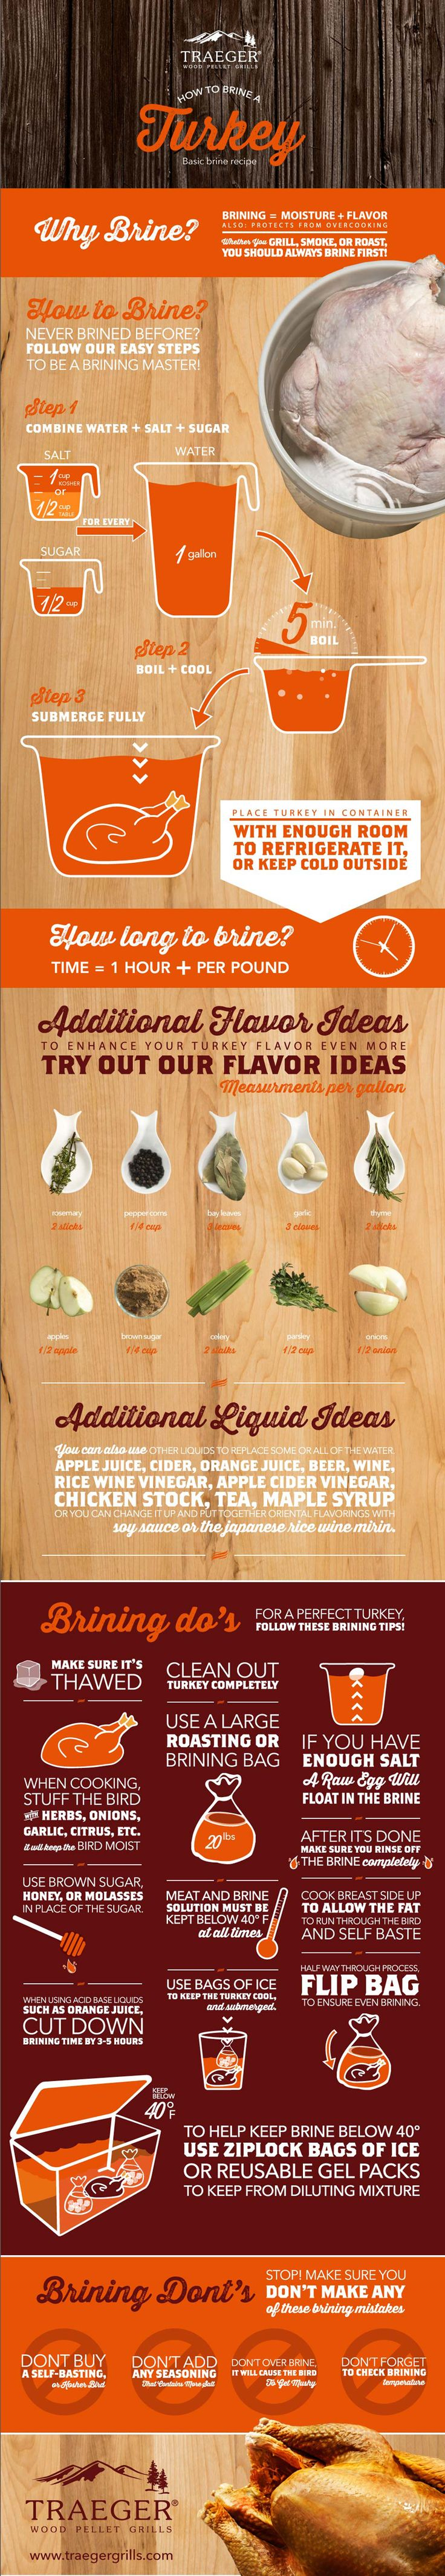 Turkey Brine Infographic